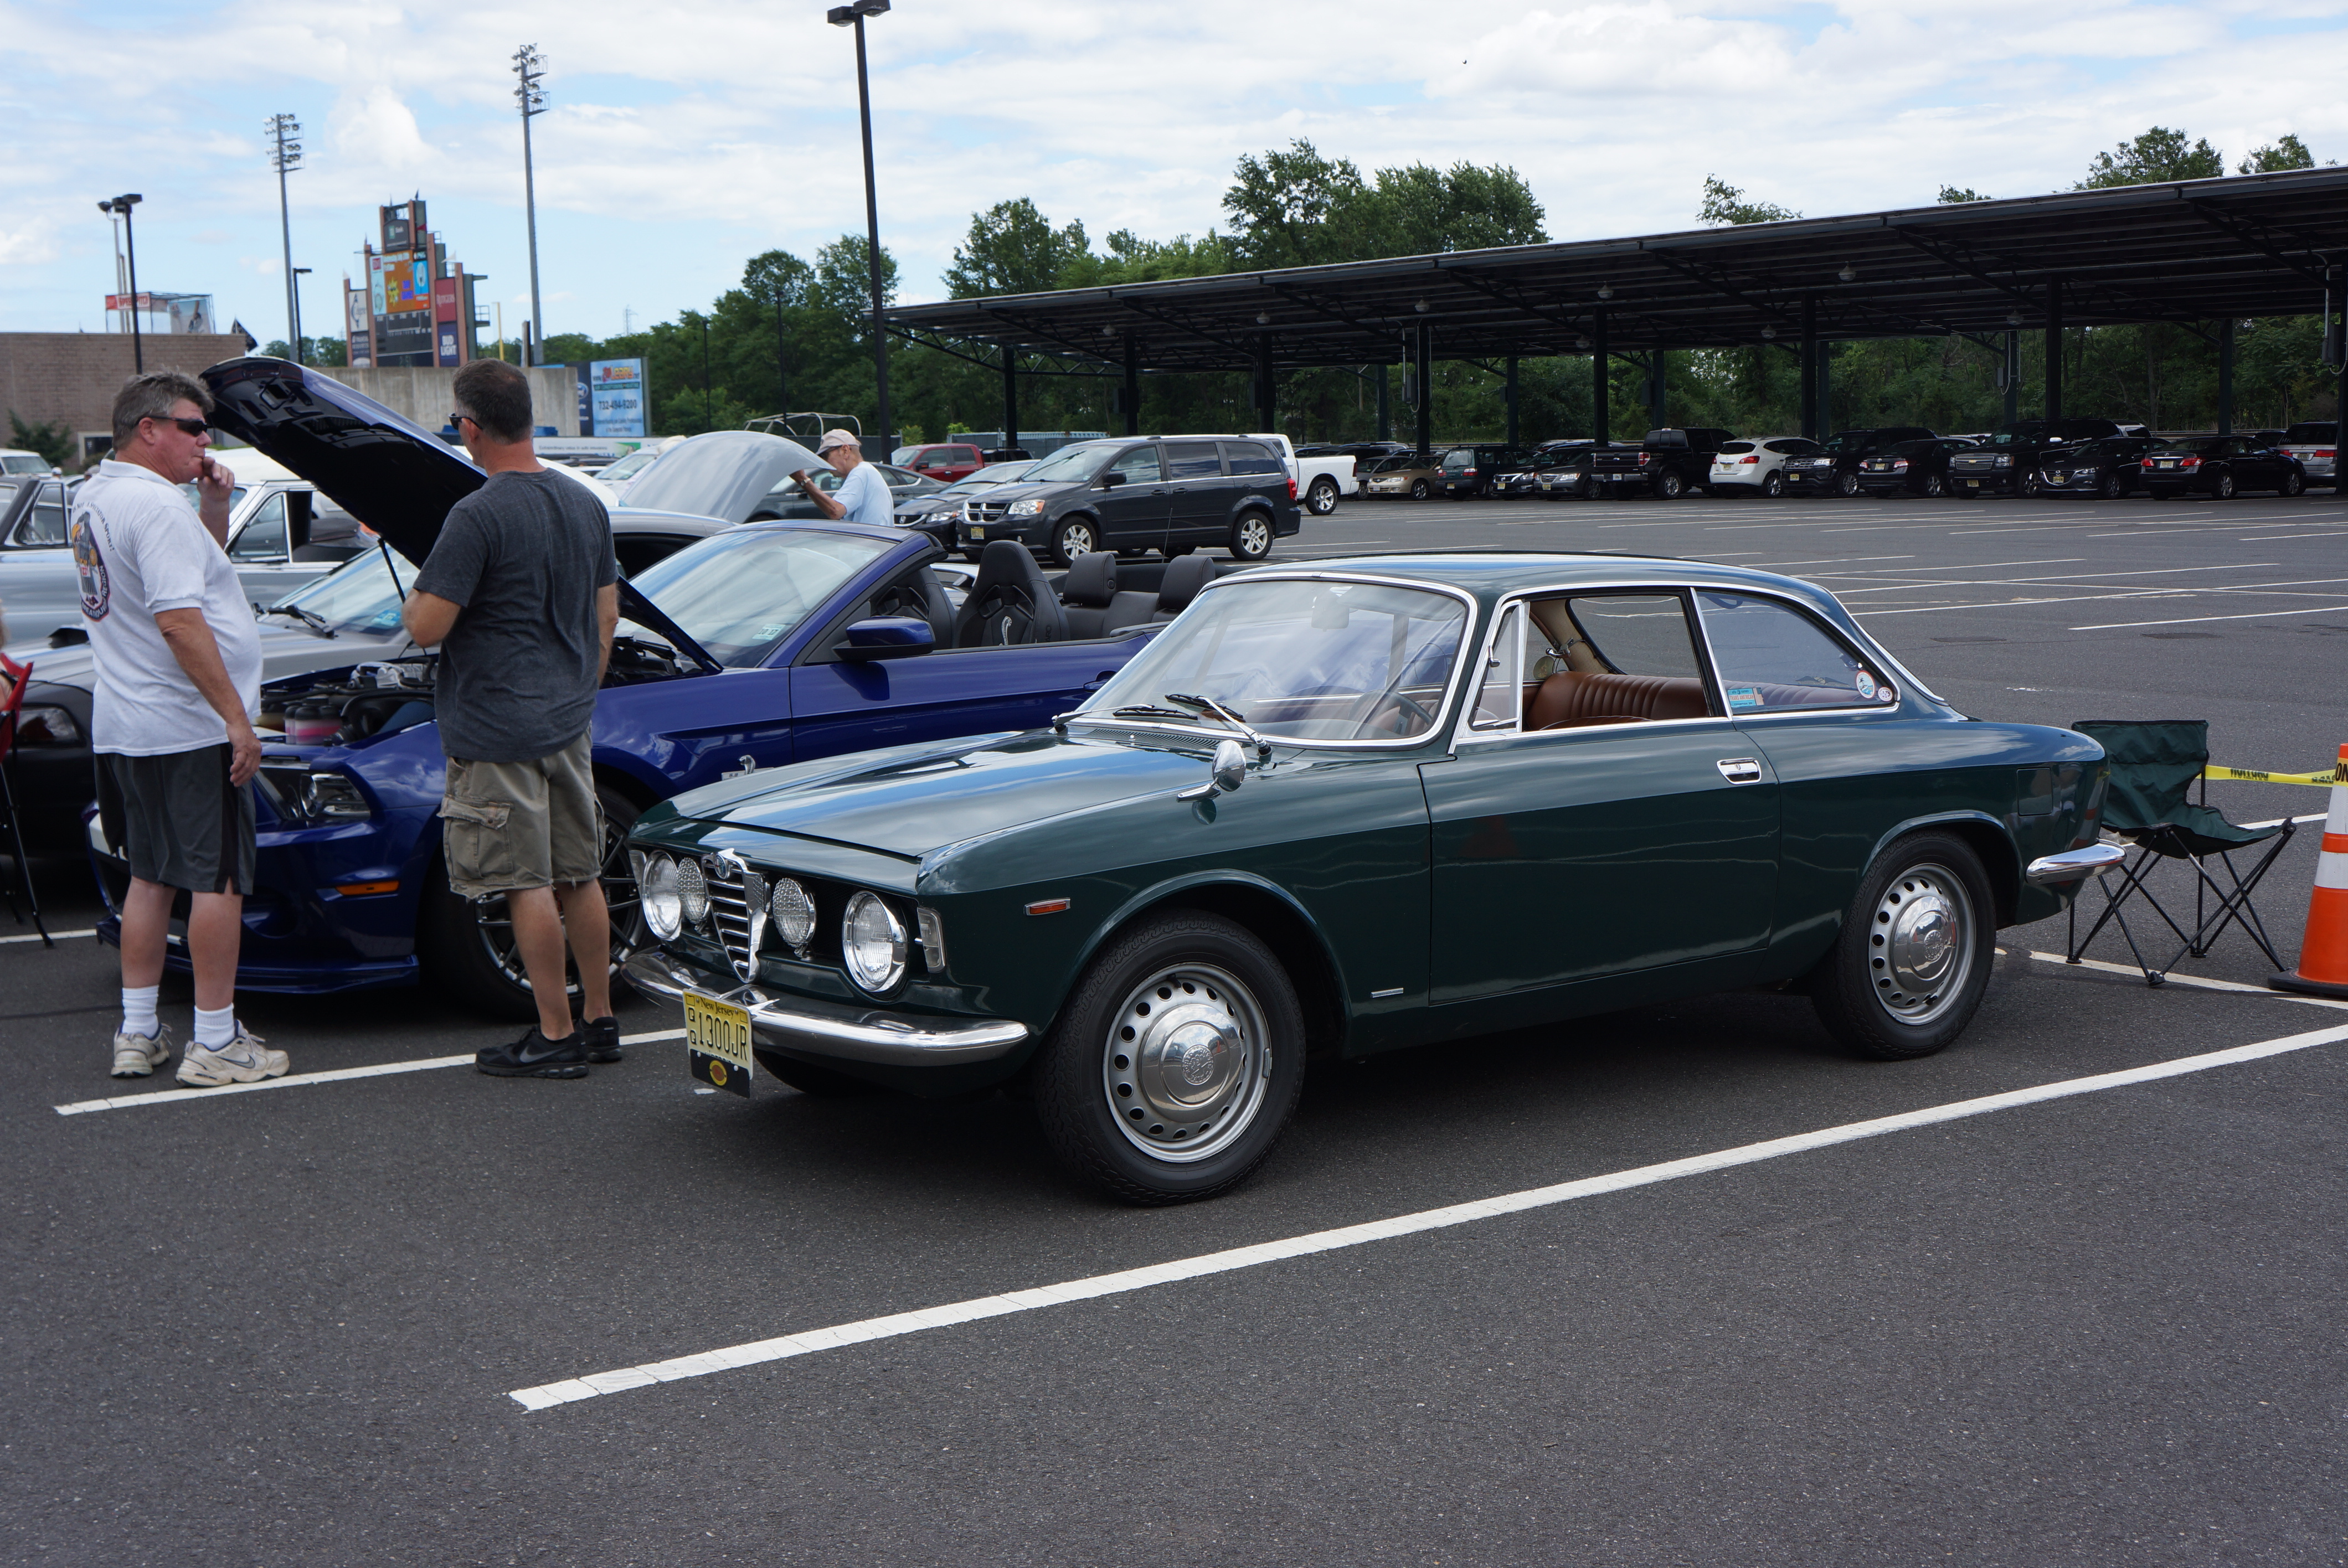 Nj Aaca Holds Car Show At Somerset Patriots Ballpark